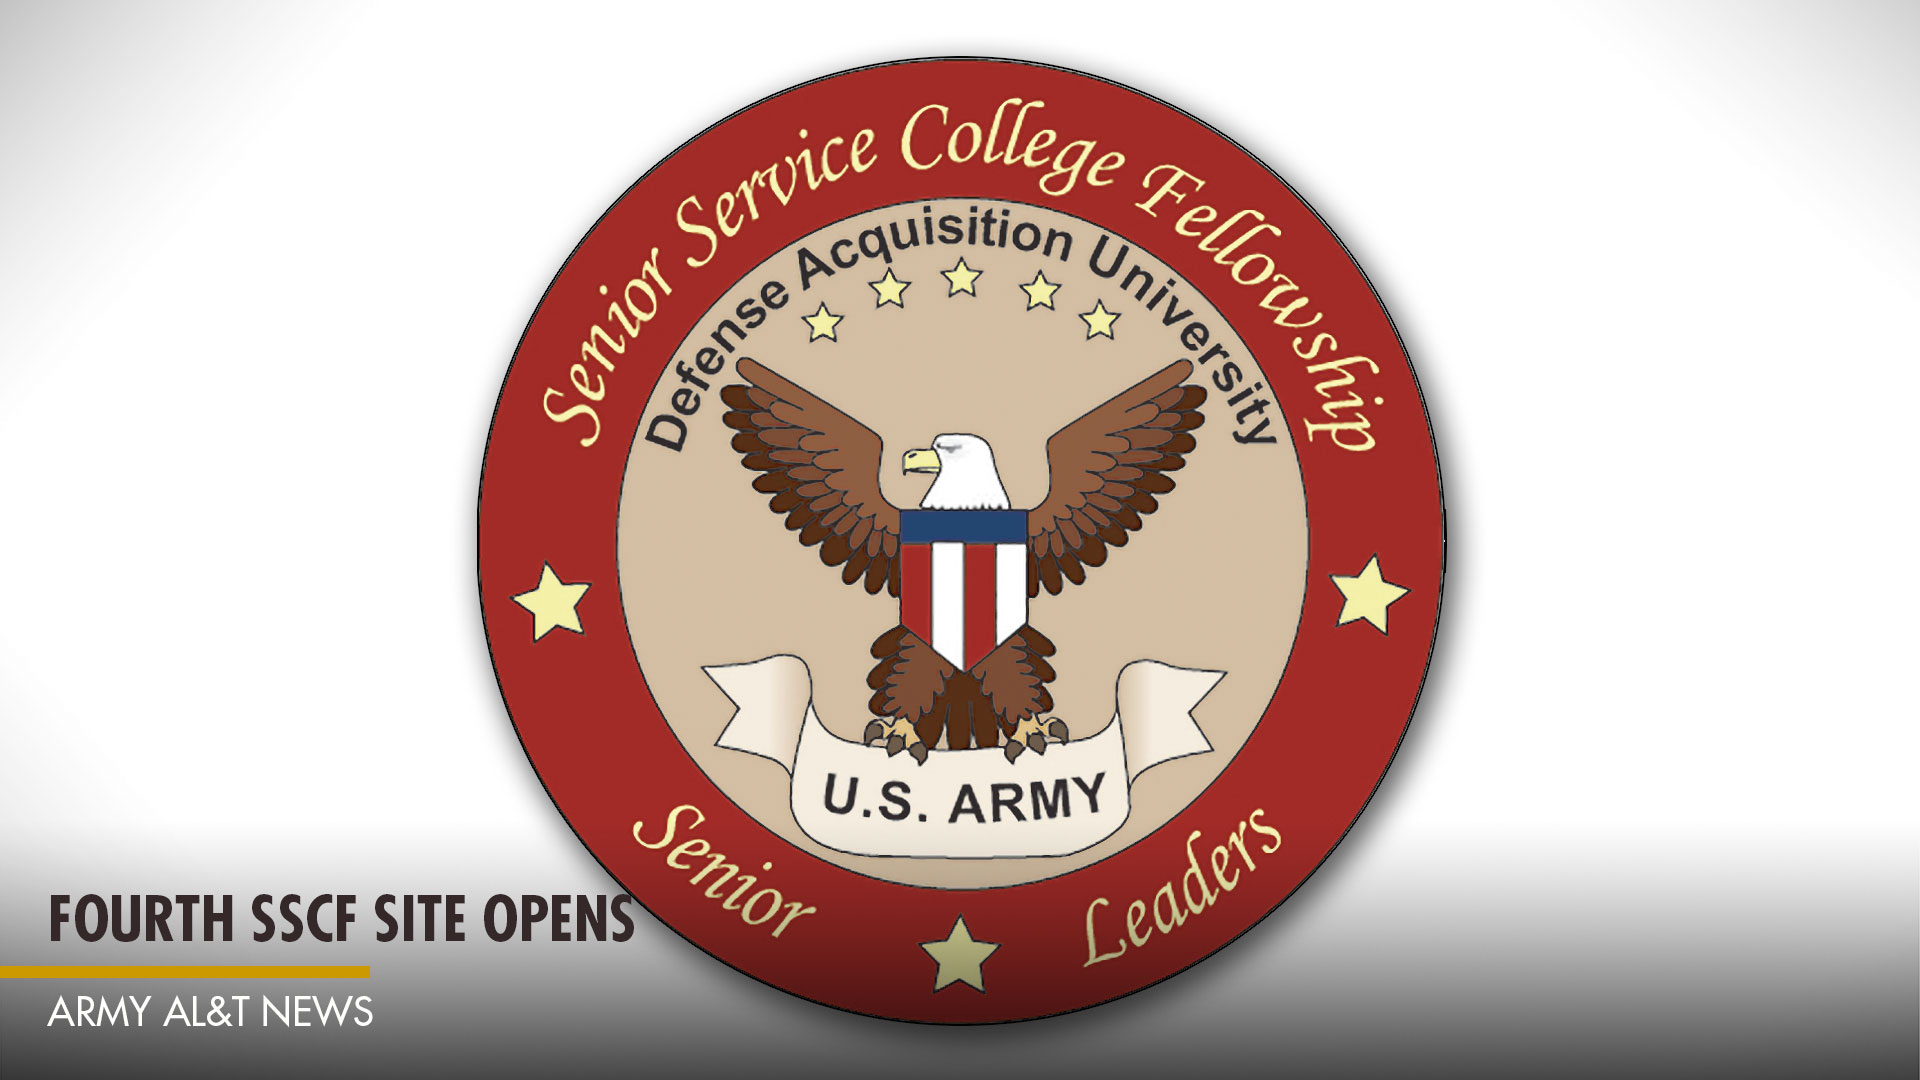 Fourth SSCF site opens, Army AL&T News article